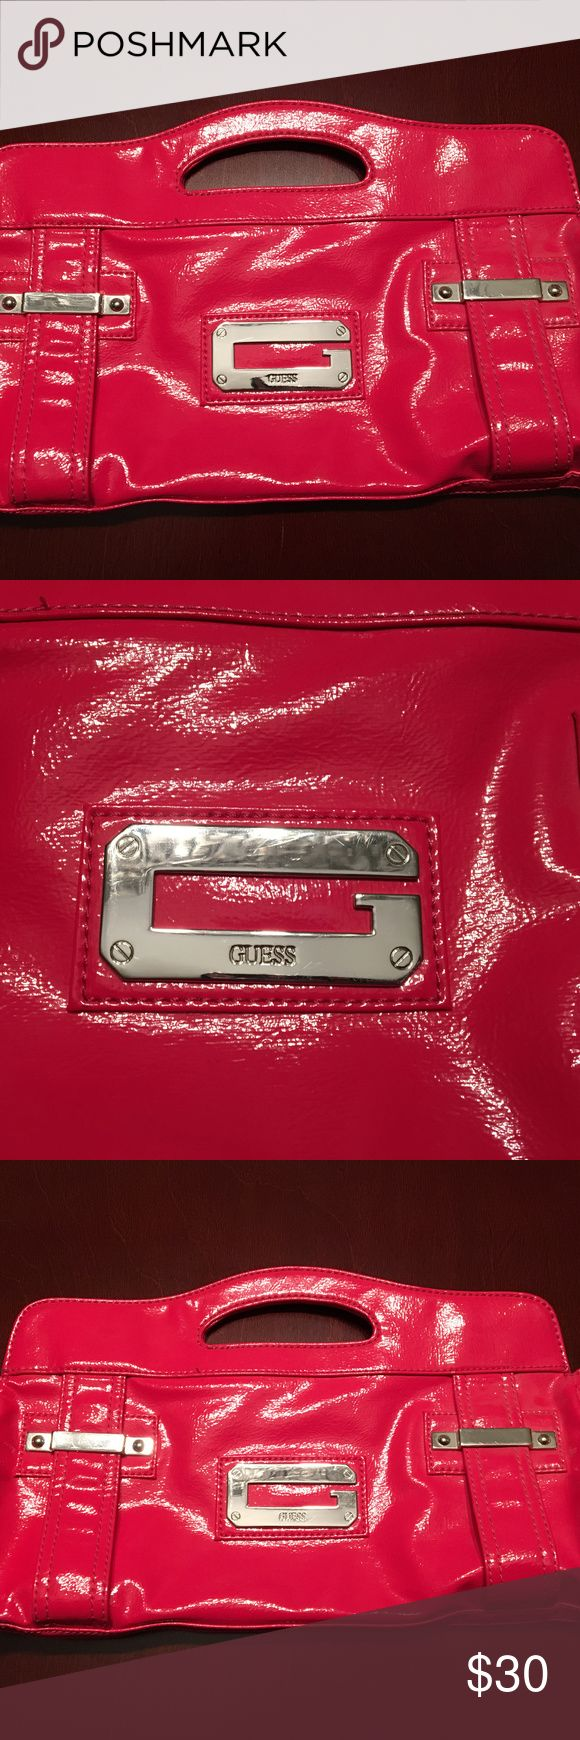 Large Guess Clutch This clutch holds everything! Makes for the perfect night out bag. There are magnetic snaps but there is an inside zippered pocket. Inside and out this bag is beautiful! Guess Bags Clutches & Wristlets